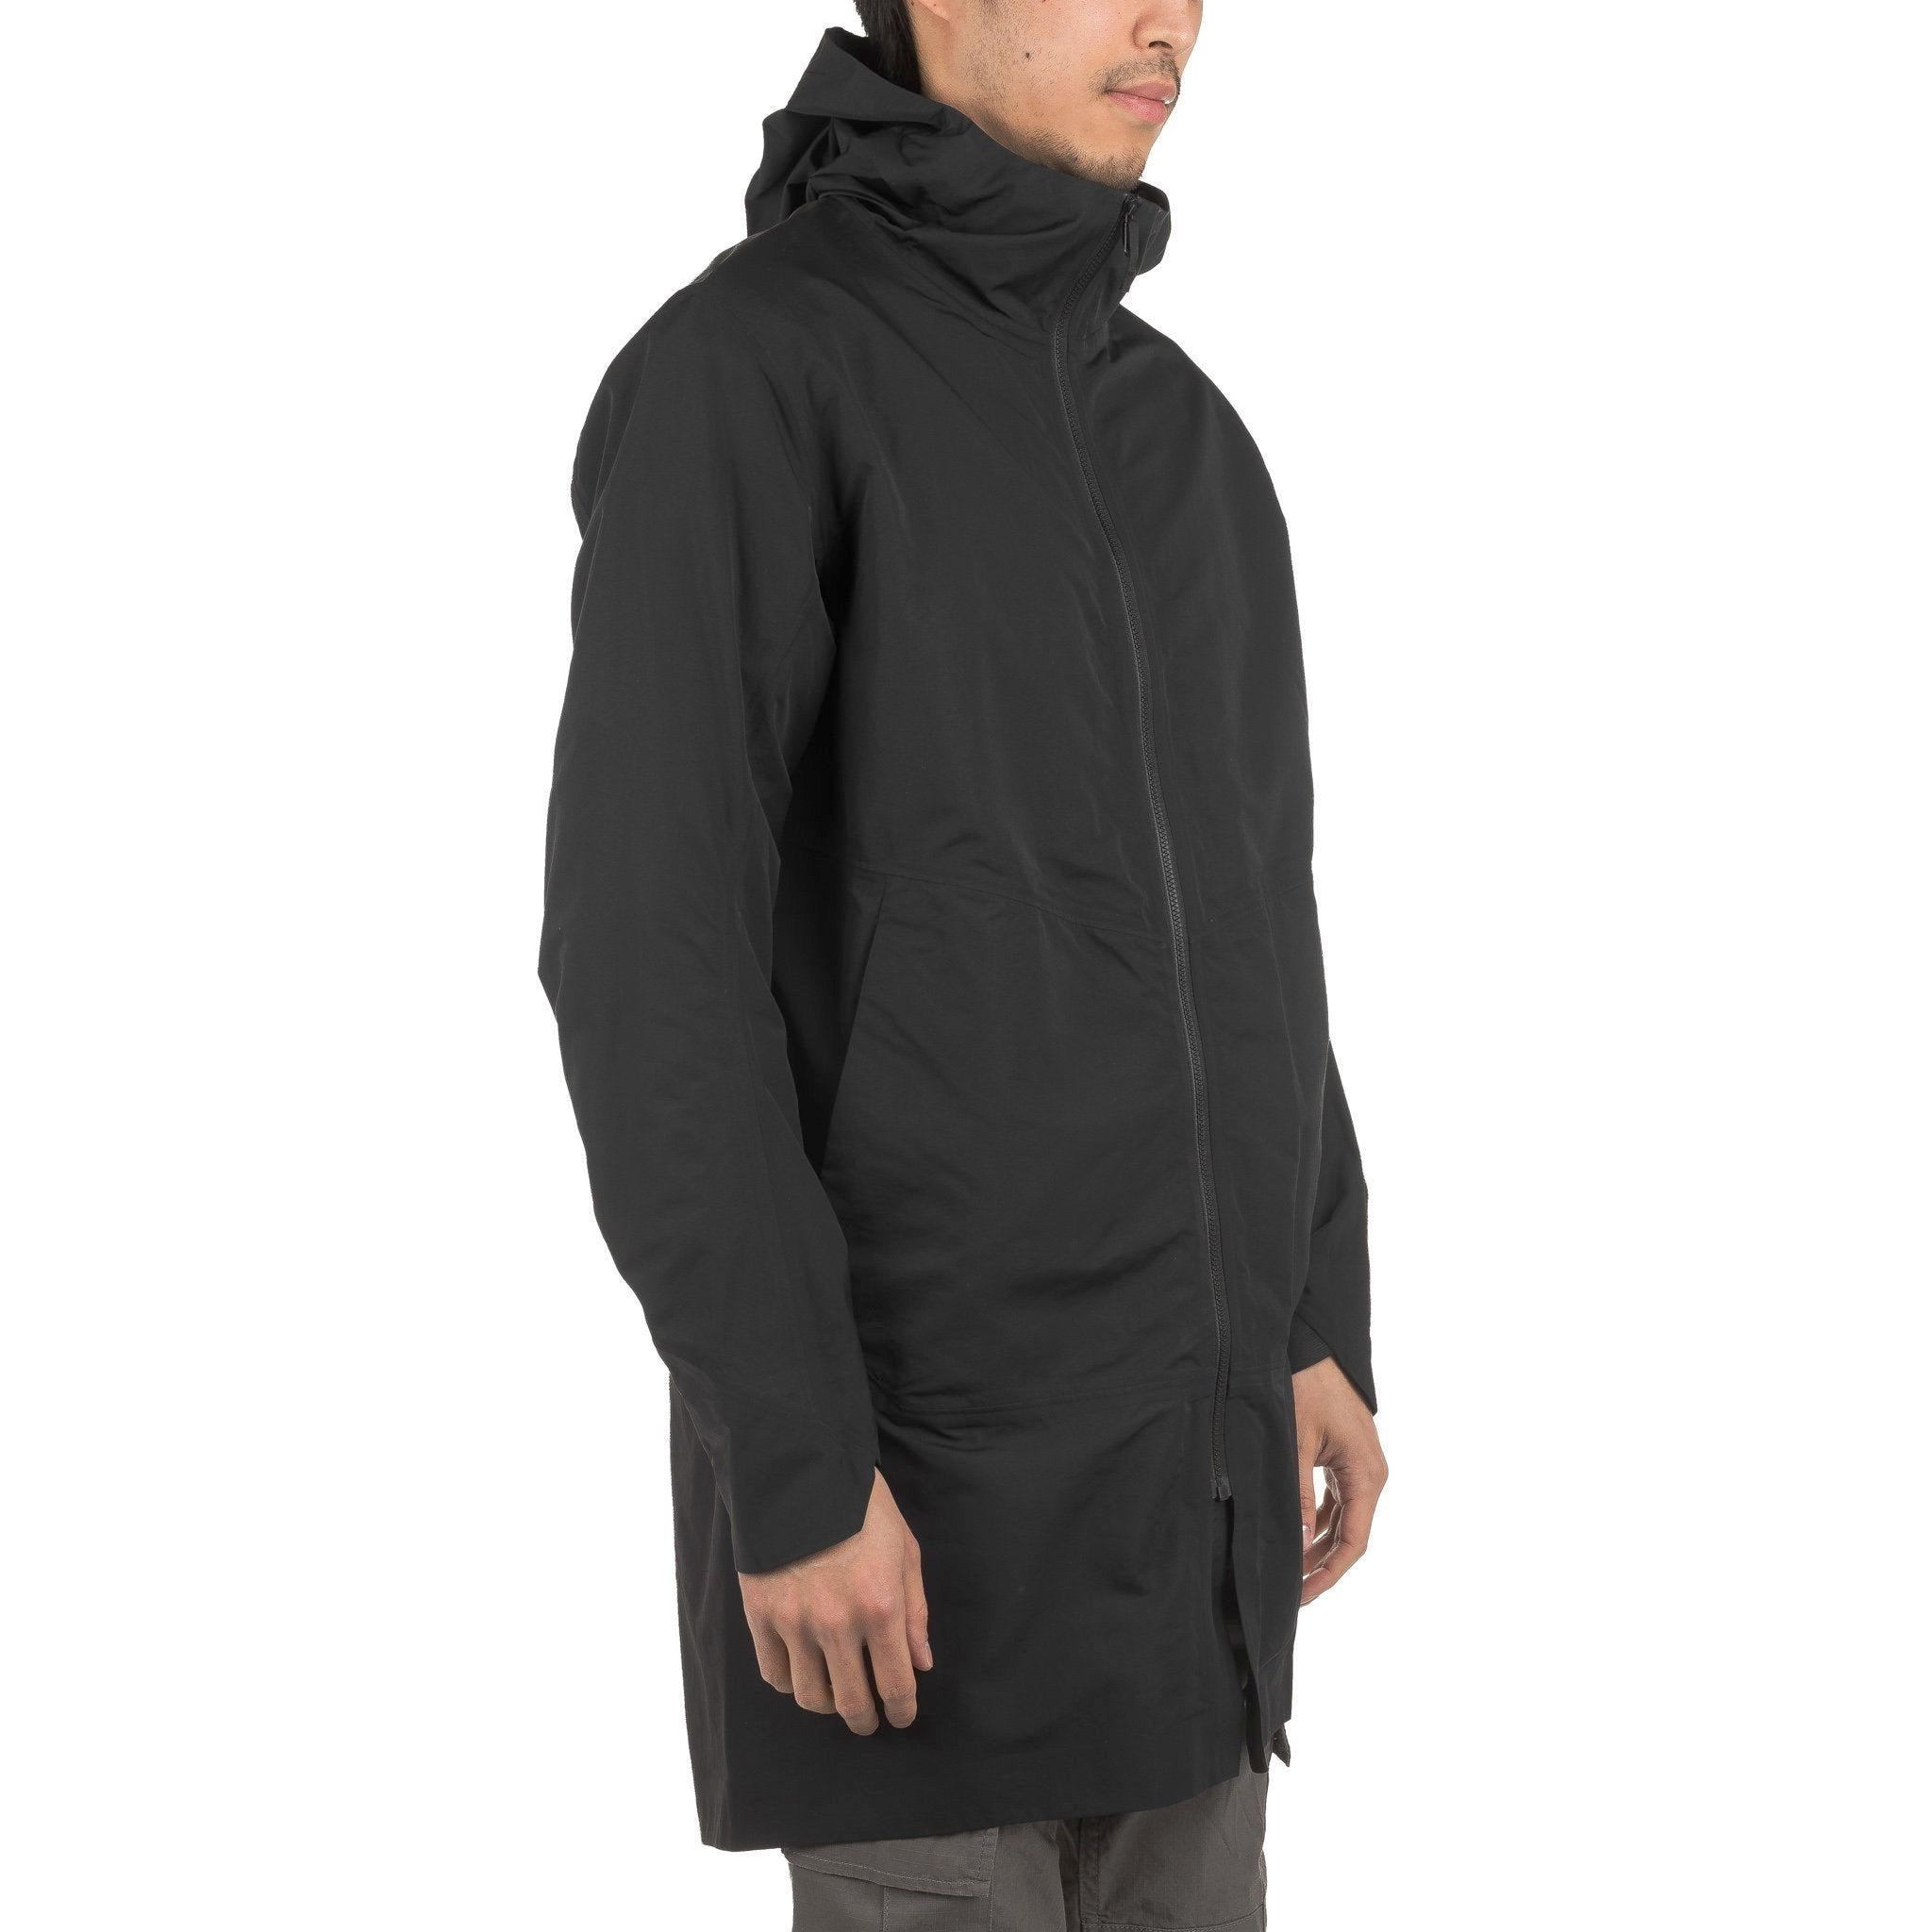 Monitor SL Jacket 19725 Black